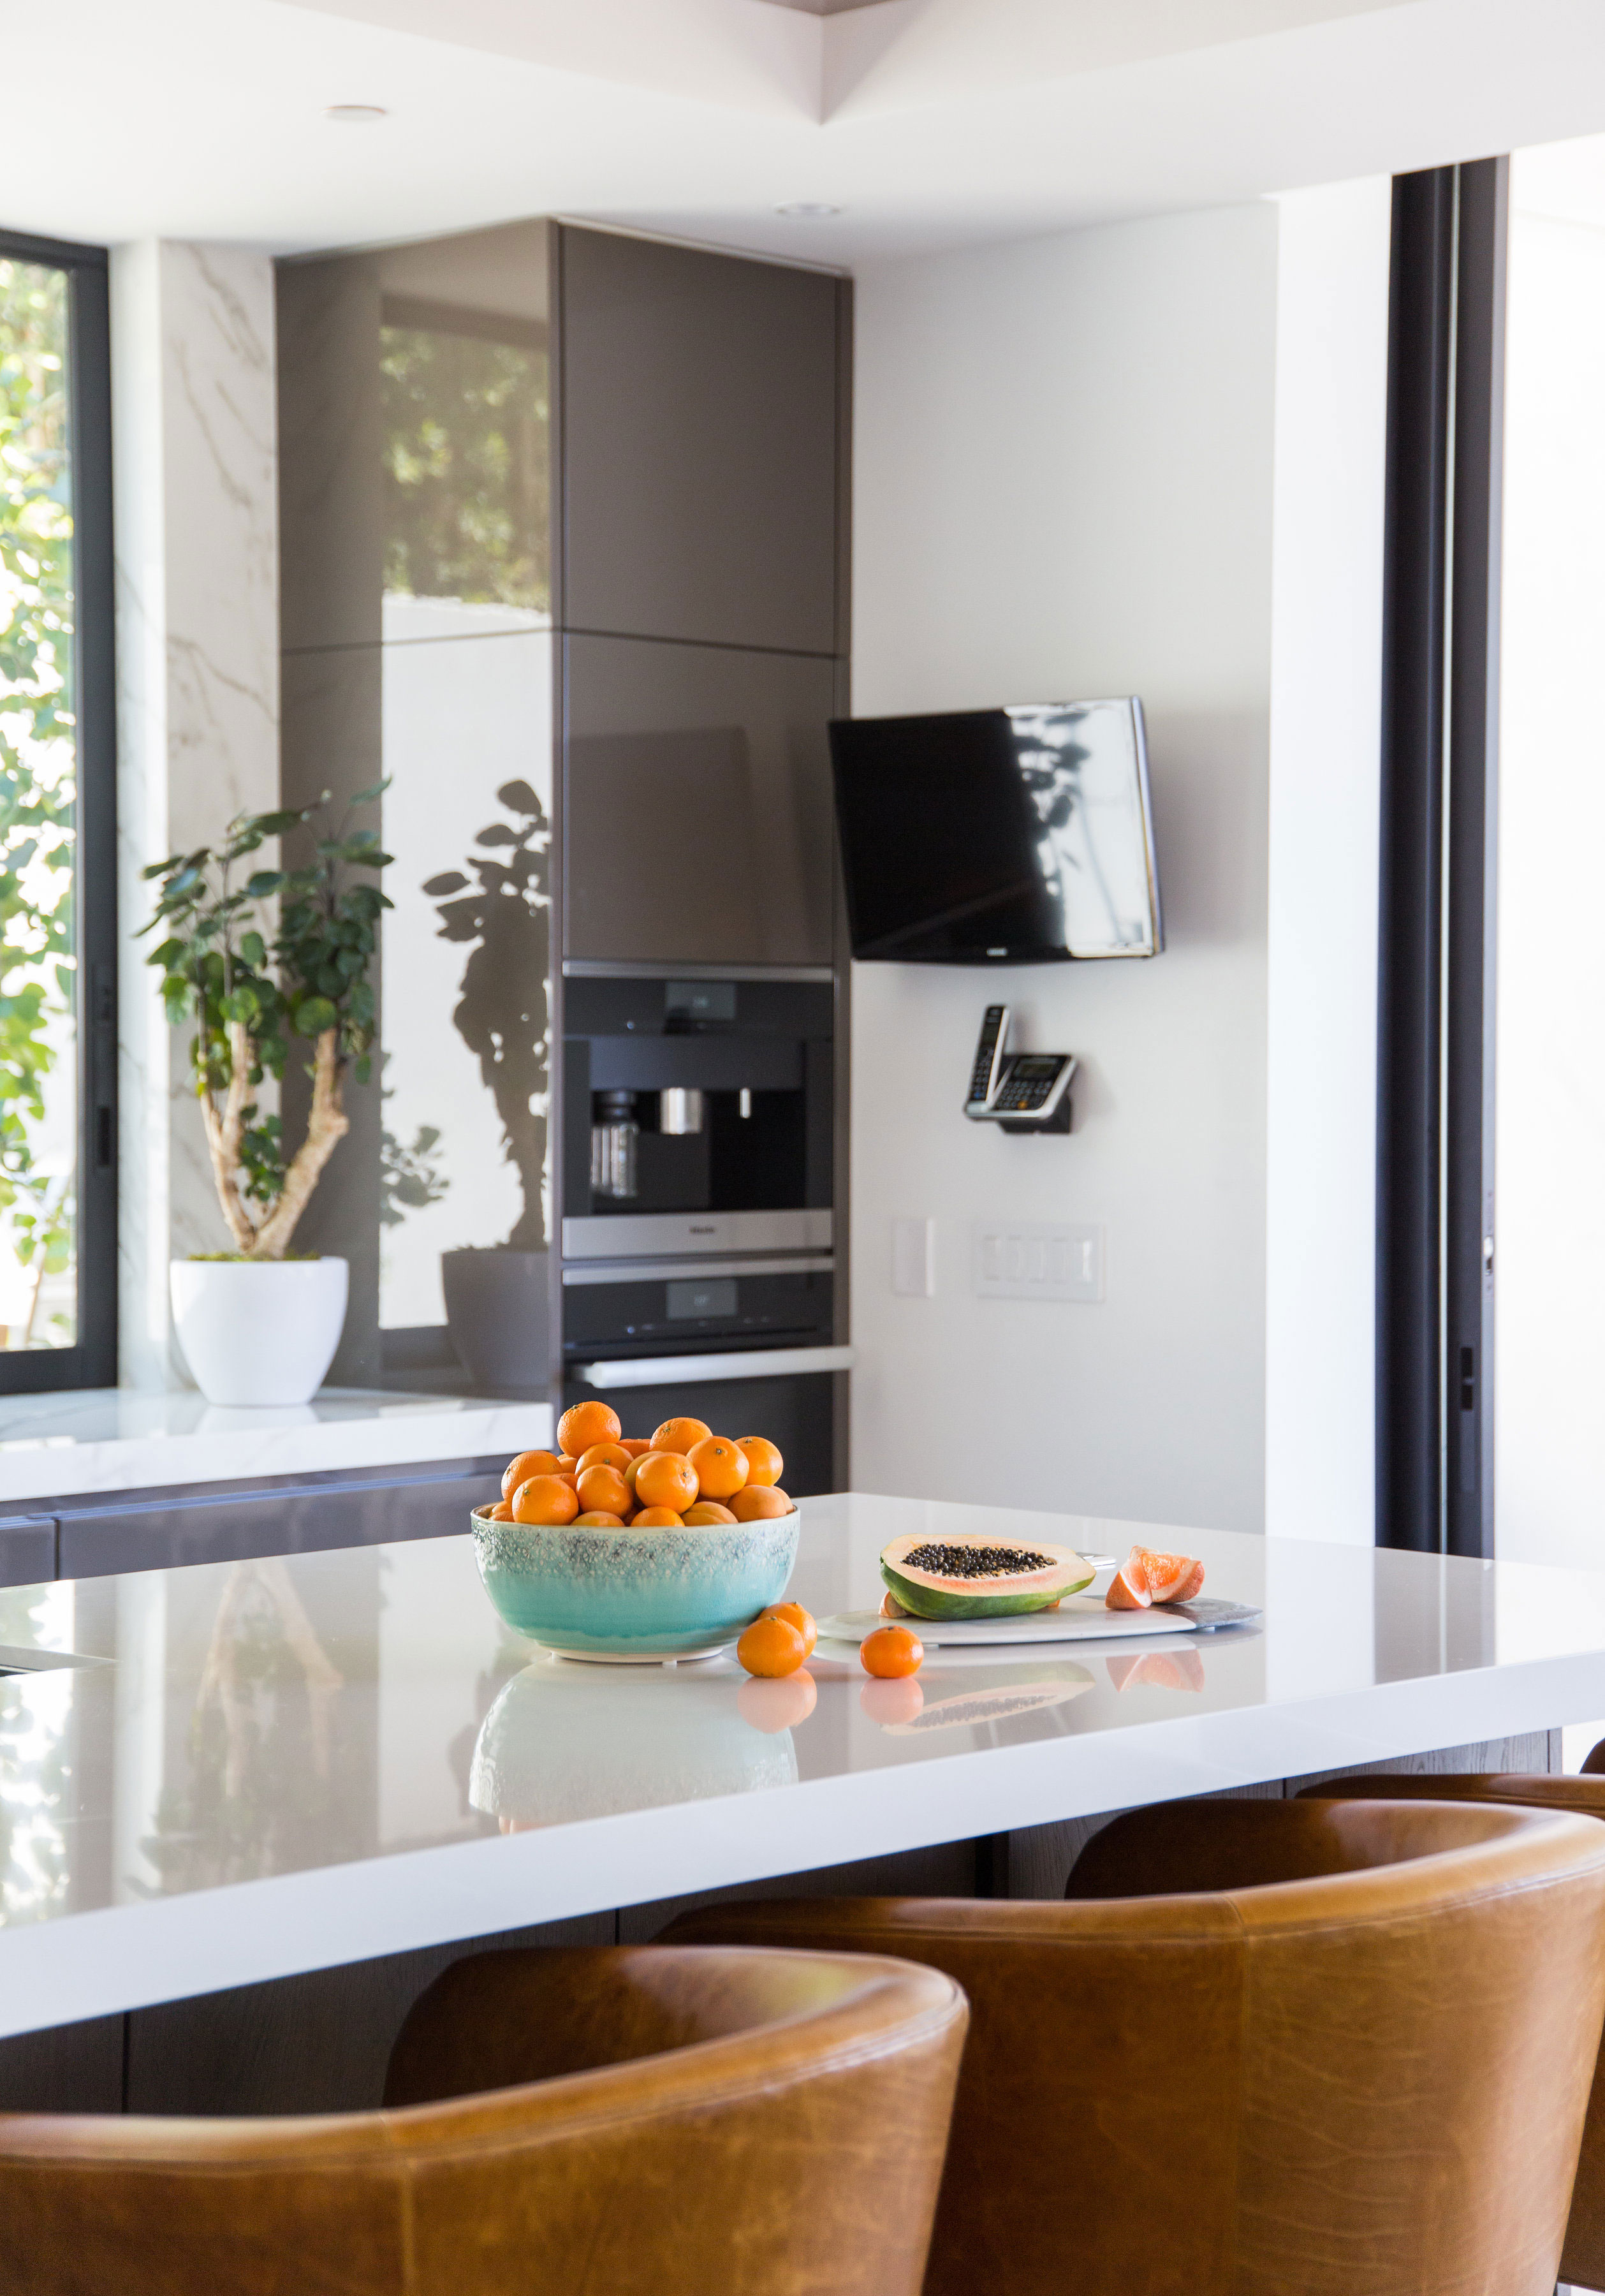 blackband_design_project_bel-air_kitchen_2